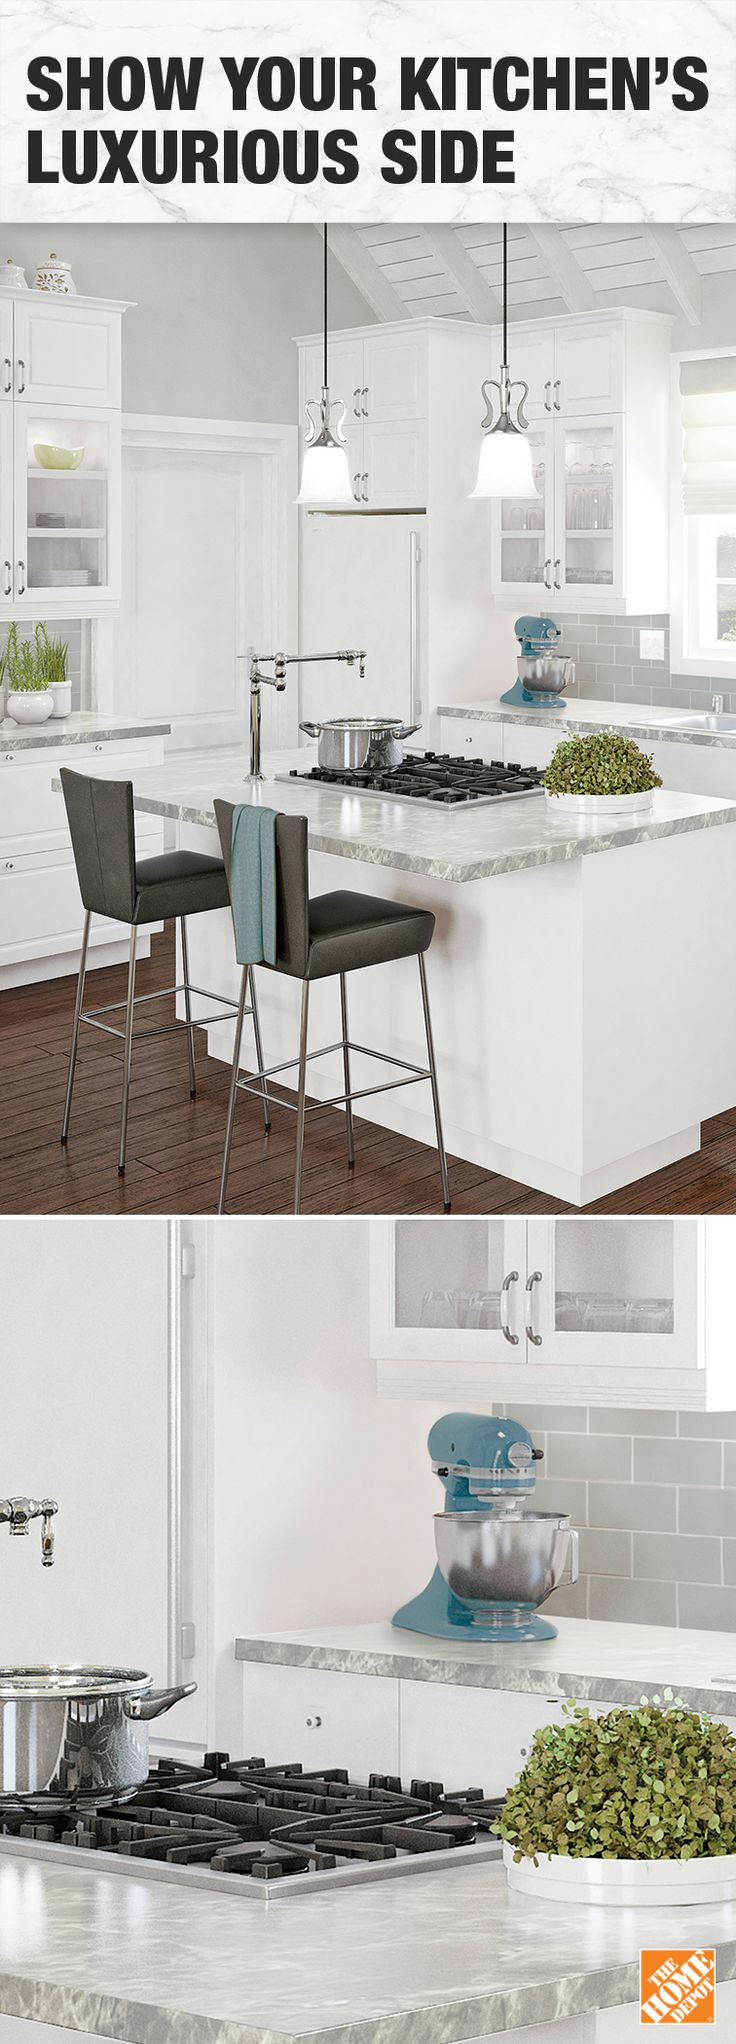 An all-white finish and added bursts of colour give a polished look to any kitchen.